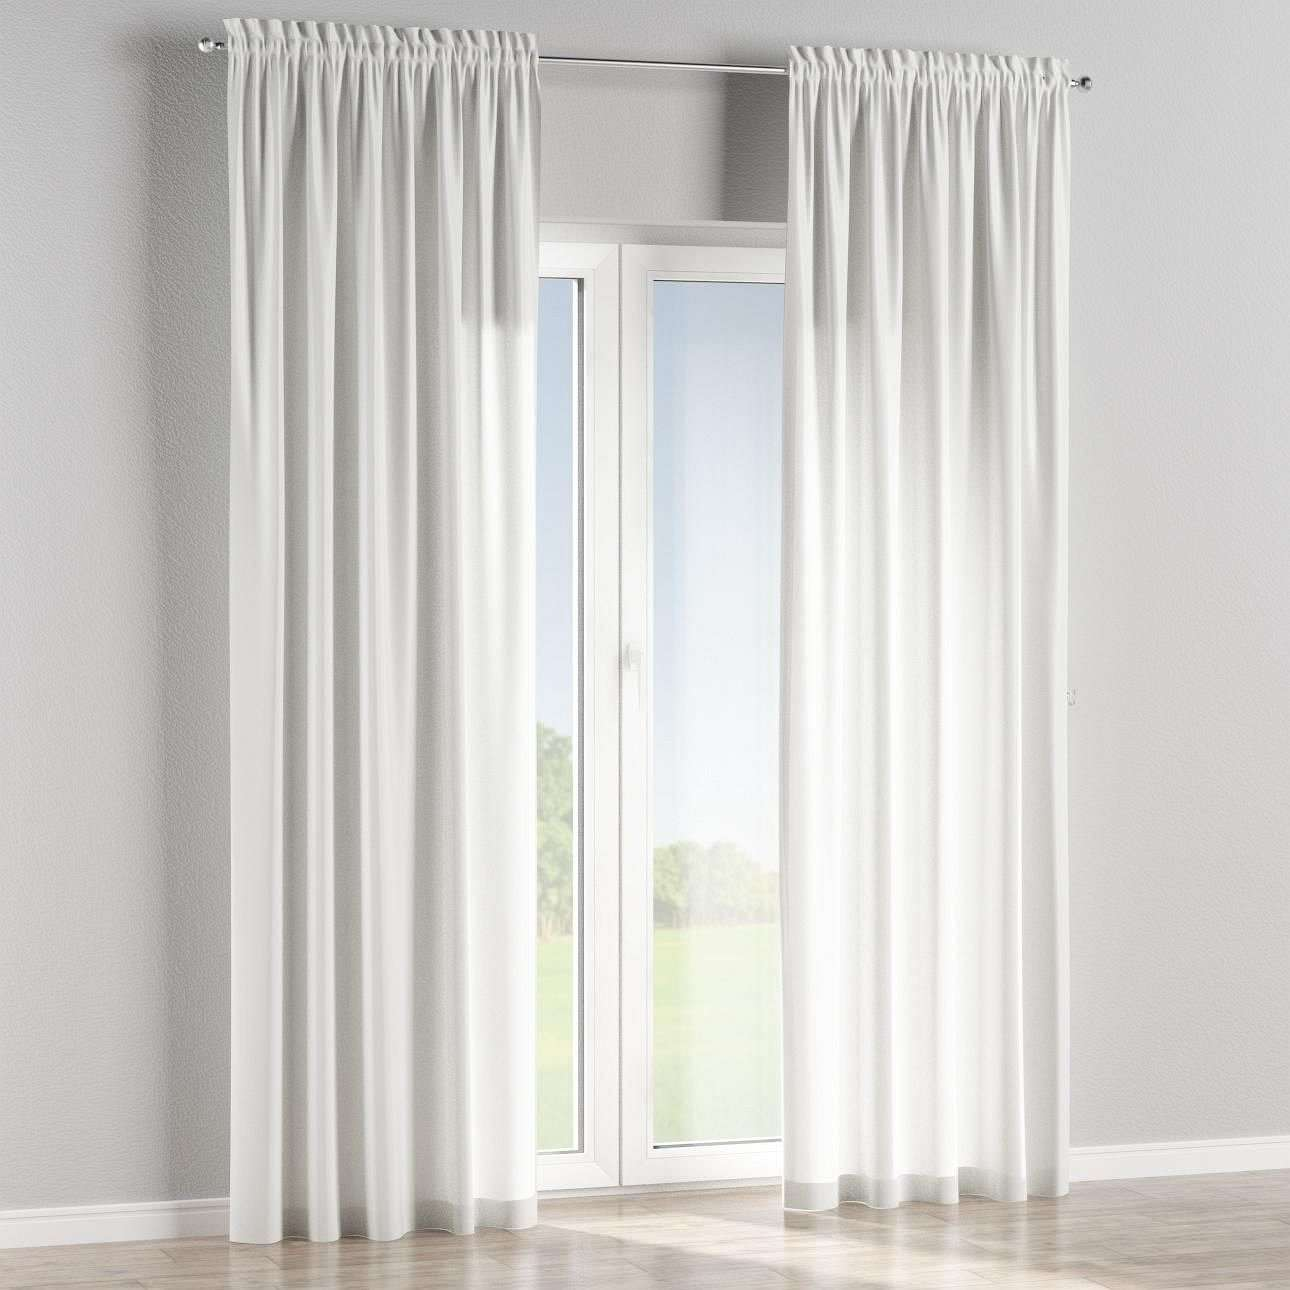 Slot and frill curtains in collection Monet, fabric: 140-06